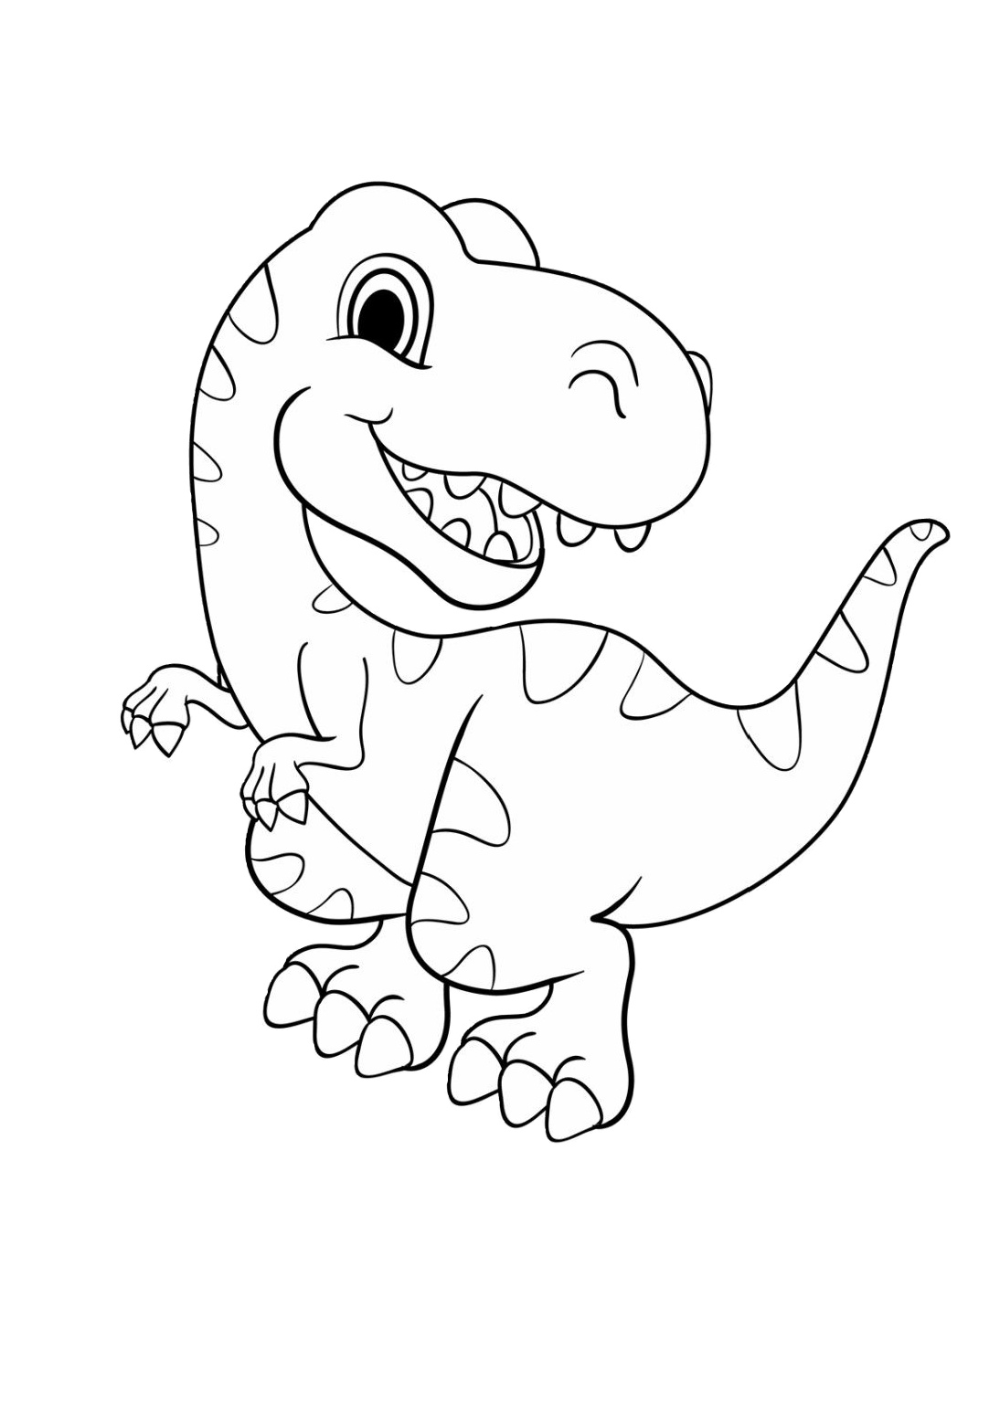 35 Dinosaurs Coloring Pages Very Easy To Hard All Dinosaurs Print Color Craft Dinosaur Coloring Pages Animal Coloring Pages Disney Coloring Pages